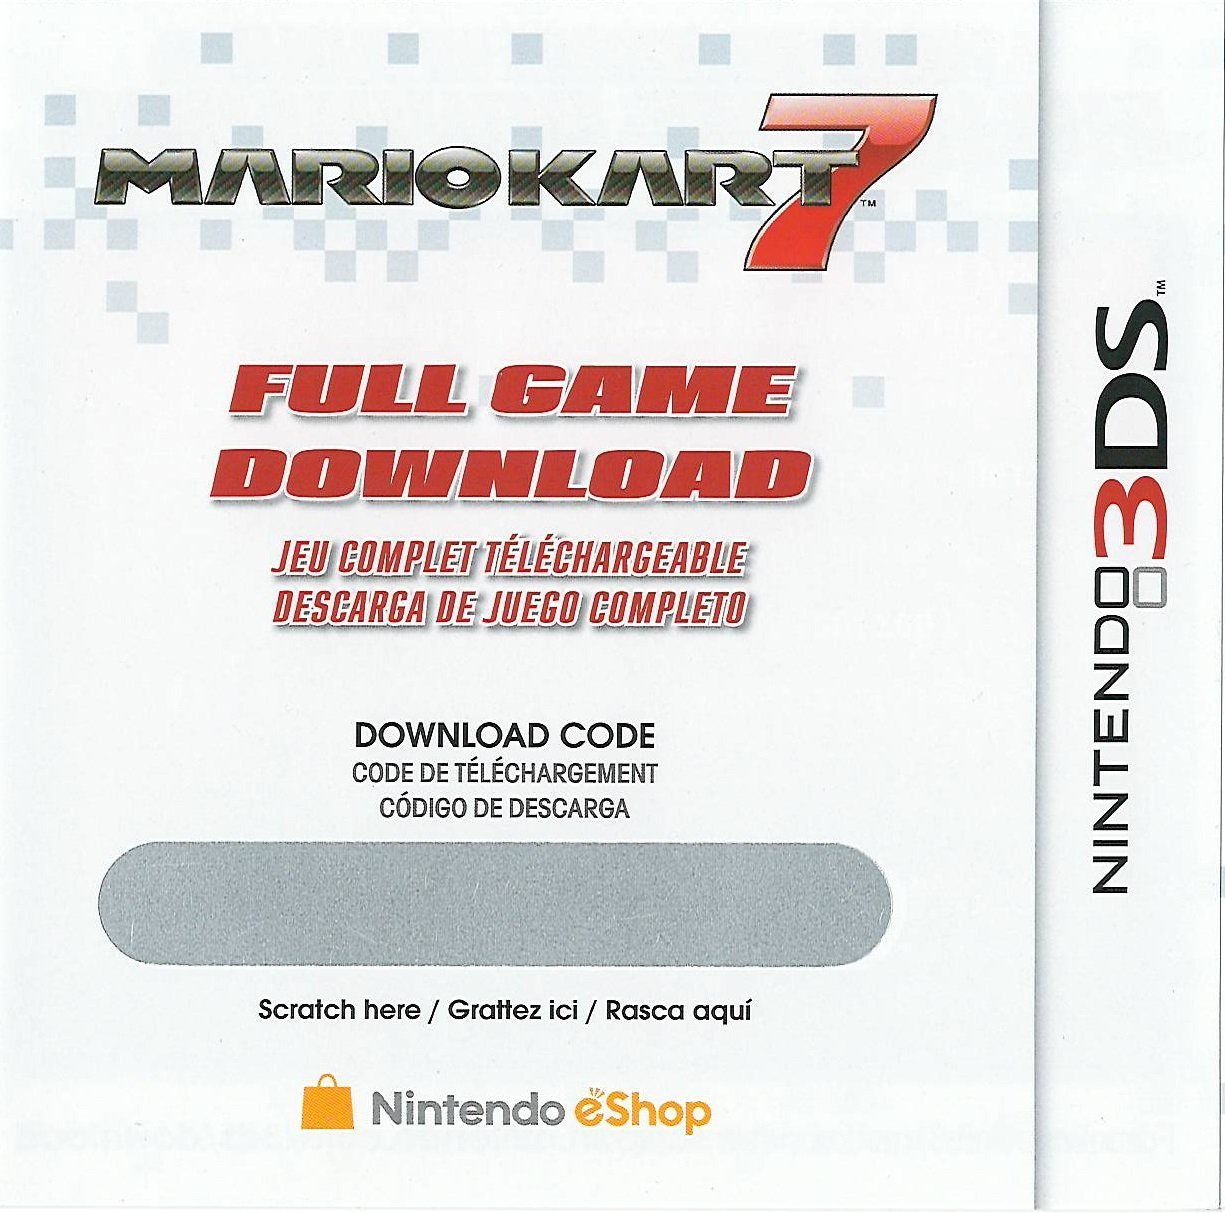 How to redeem your download code for nintendo wii u - Amazon Is Selling Mario Kart 7 Download Codes For Just 16 50 Cards Should Be Shipped Via Regular Mail And You Ll Then Need To Redeem The Code Included On